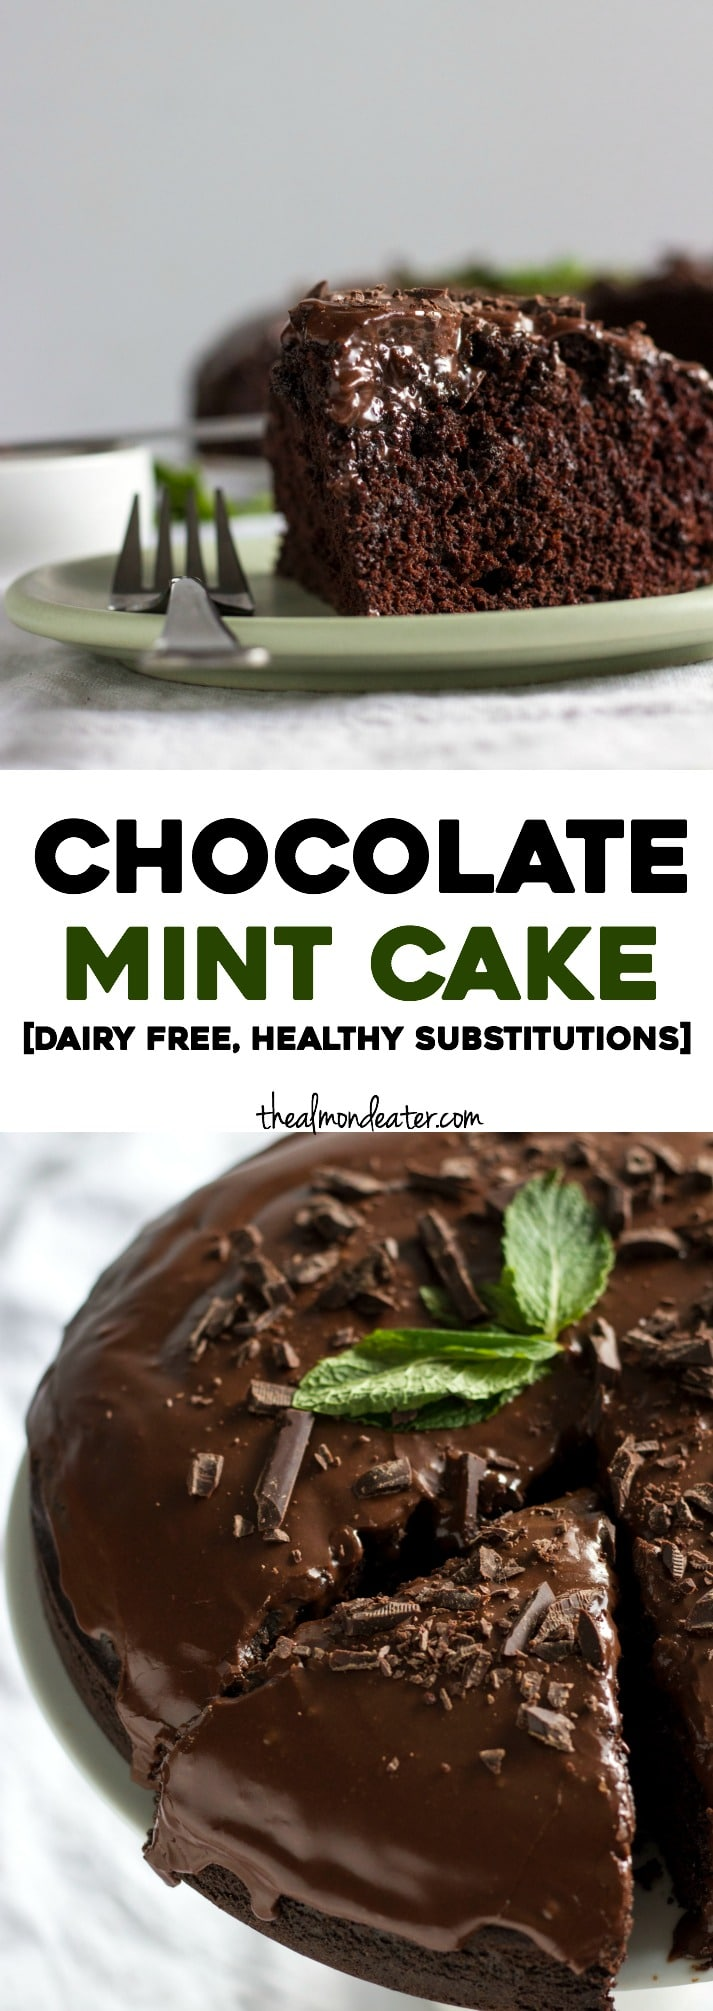 Chocolate Mint Cake | A decadent yet healthier chocolate cake with a hint of mint--it's dairy free, too! | thealmondeater.com